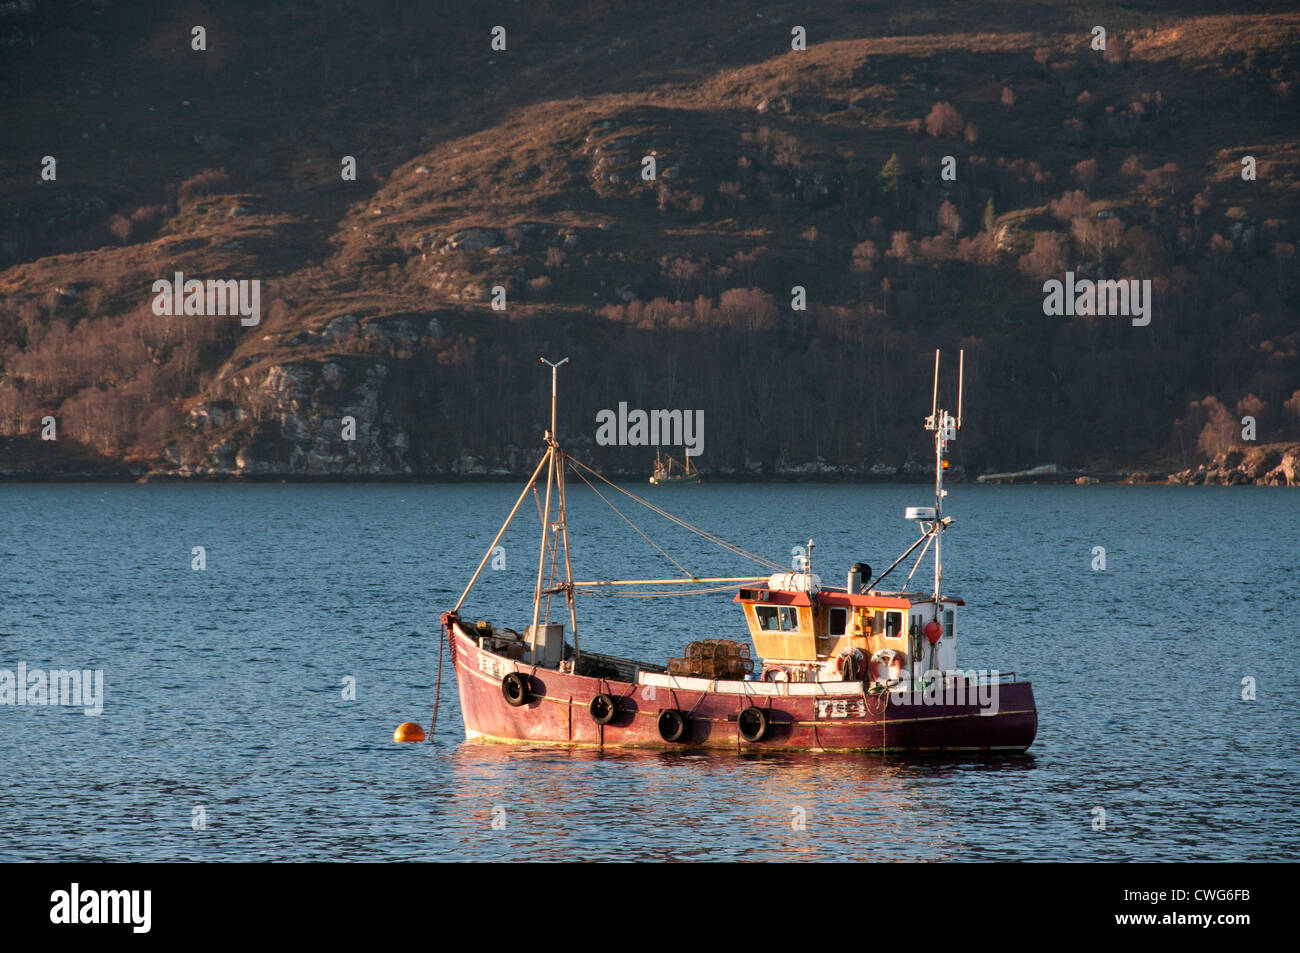 a old fishing boat on loch broom ullapool wester ross  west highlands of scotland - Stock Image